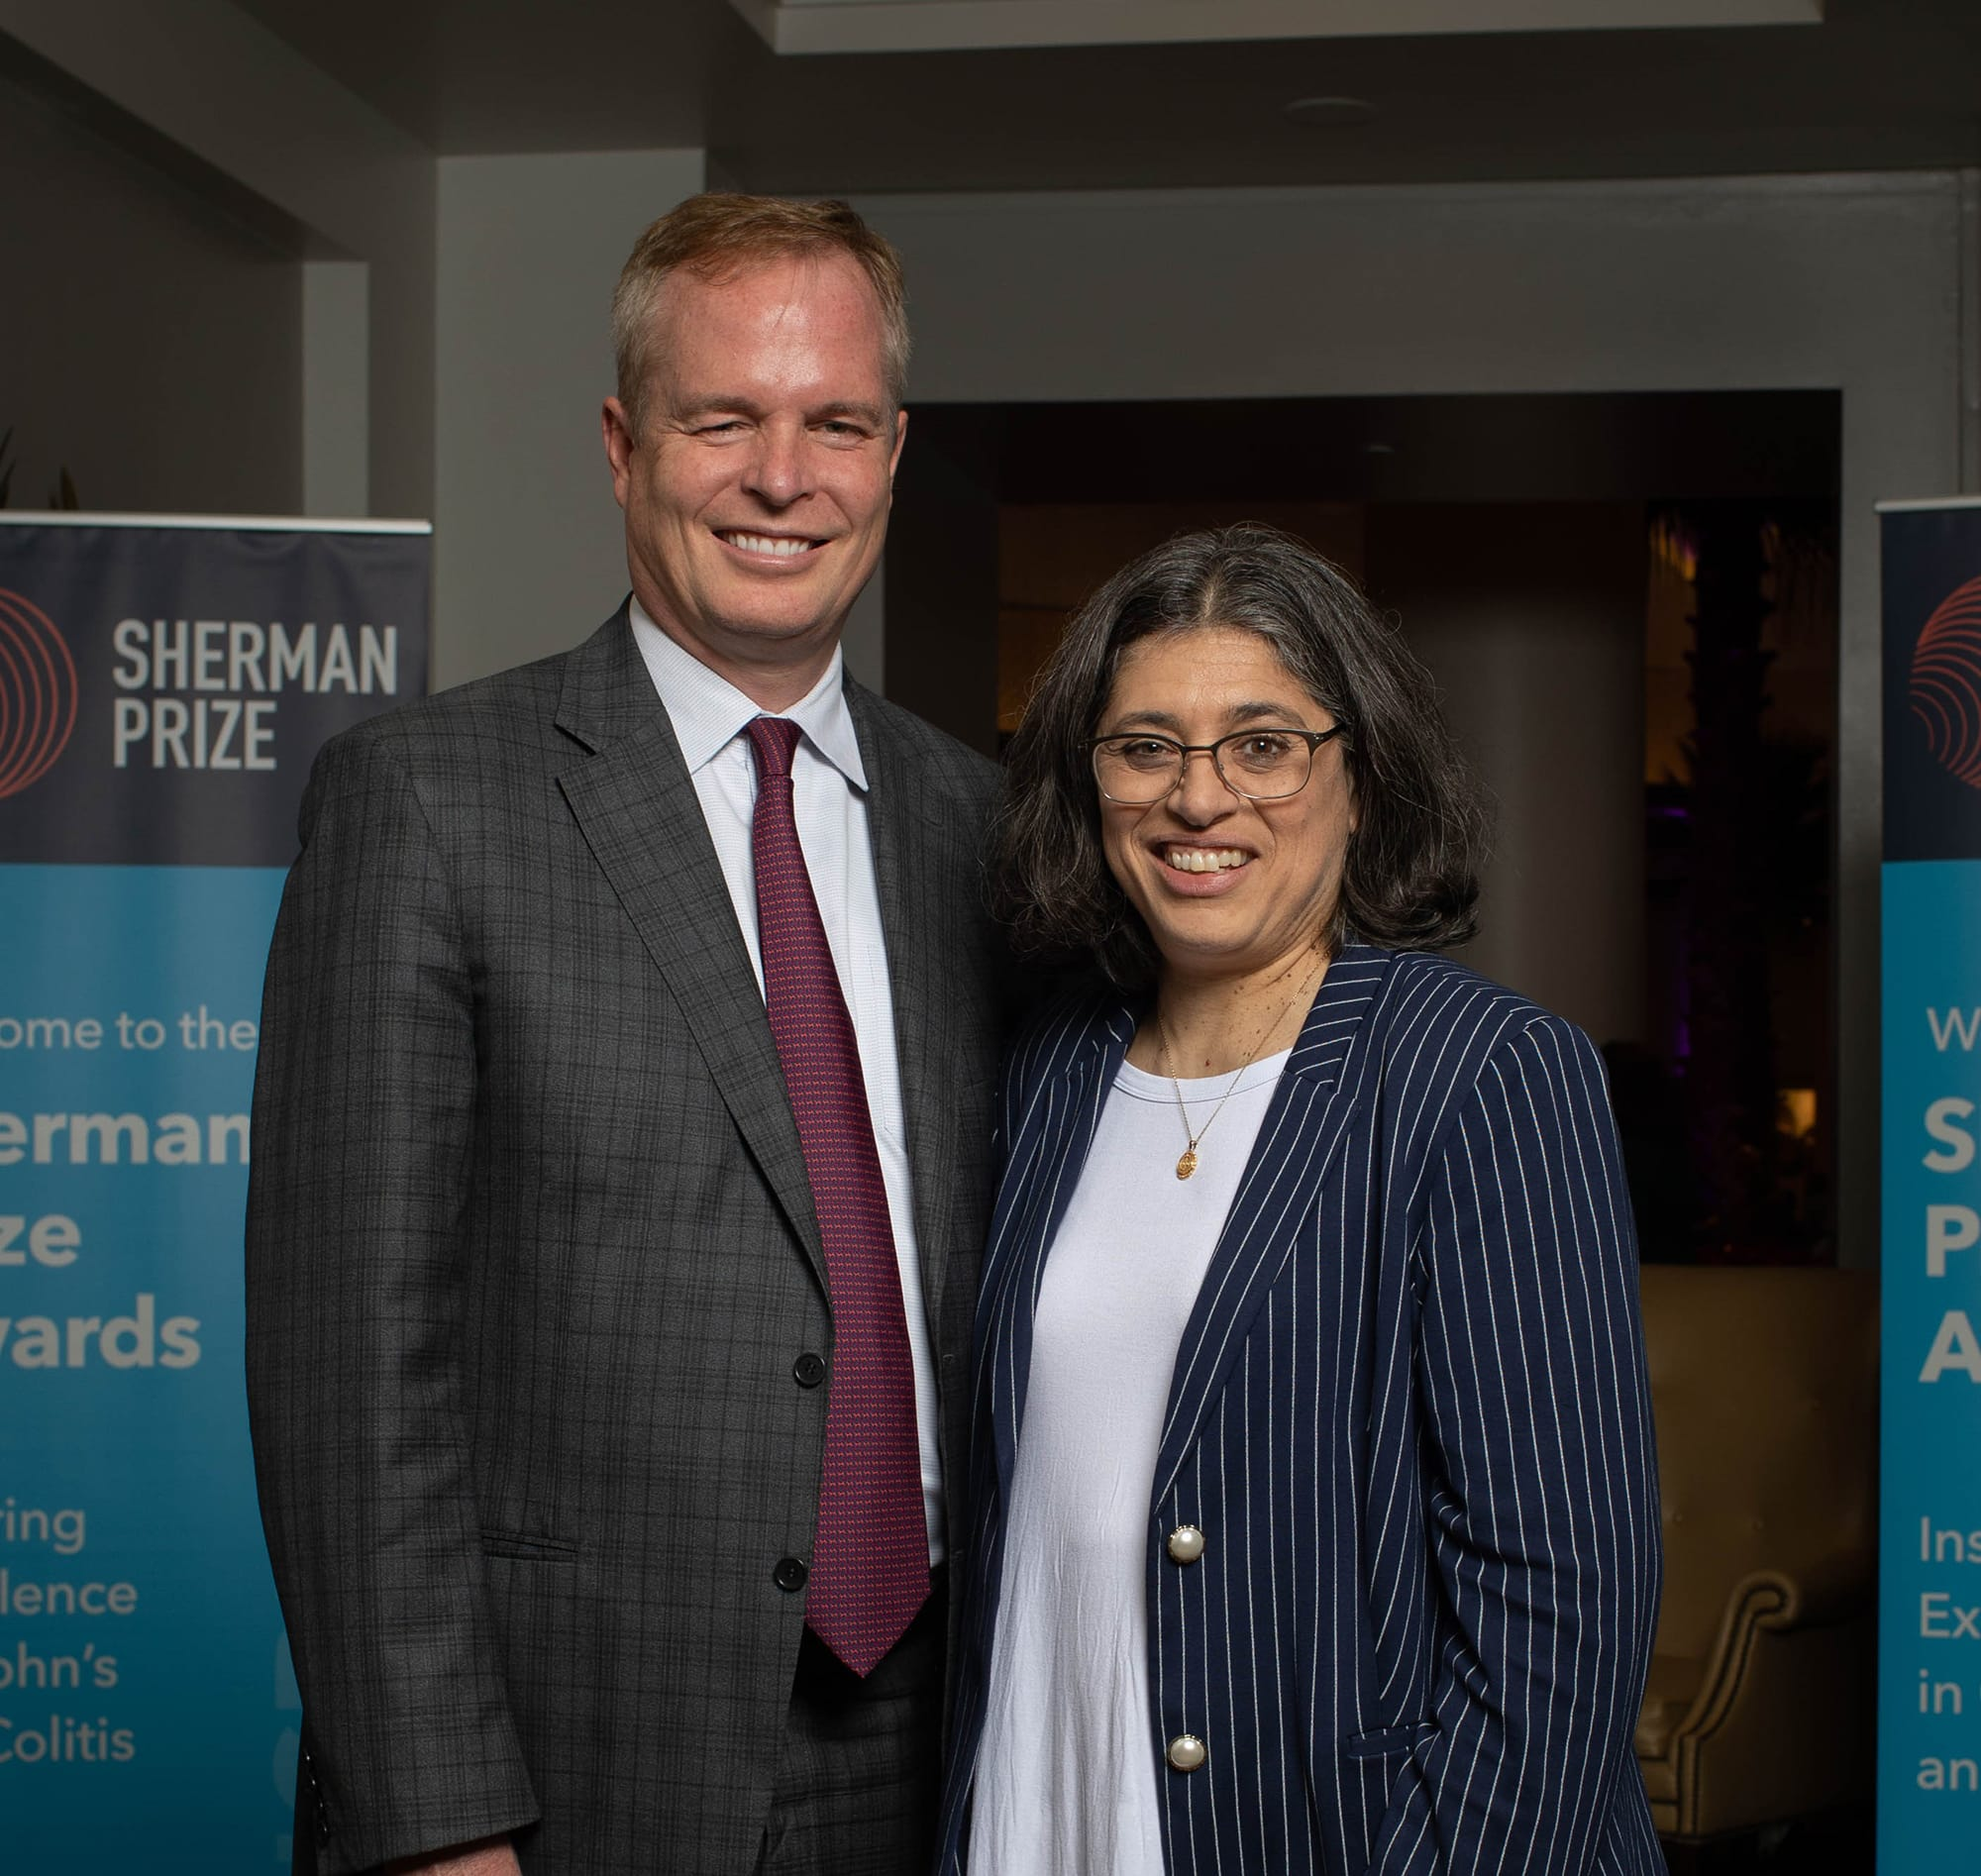 <p>2019 Sherman Prize Recipient Dr. William Sandborn and 2019 Selection Committee Member Dr. Sunanda Kane</p>